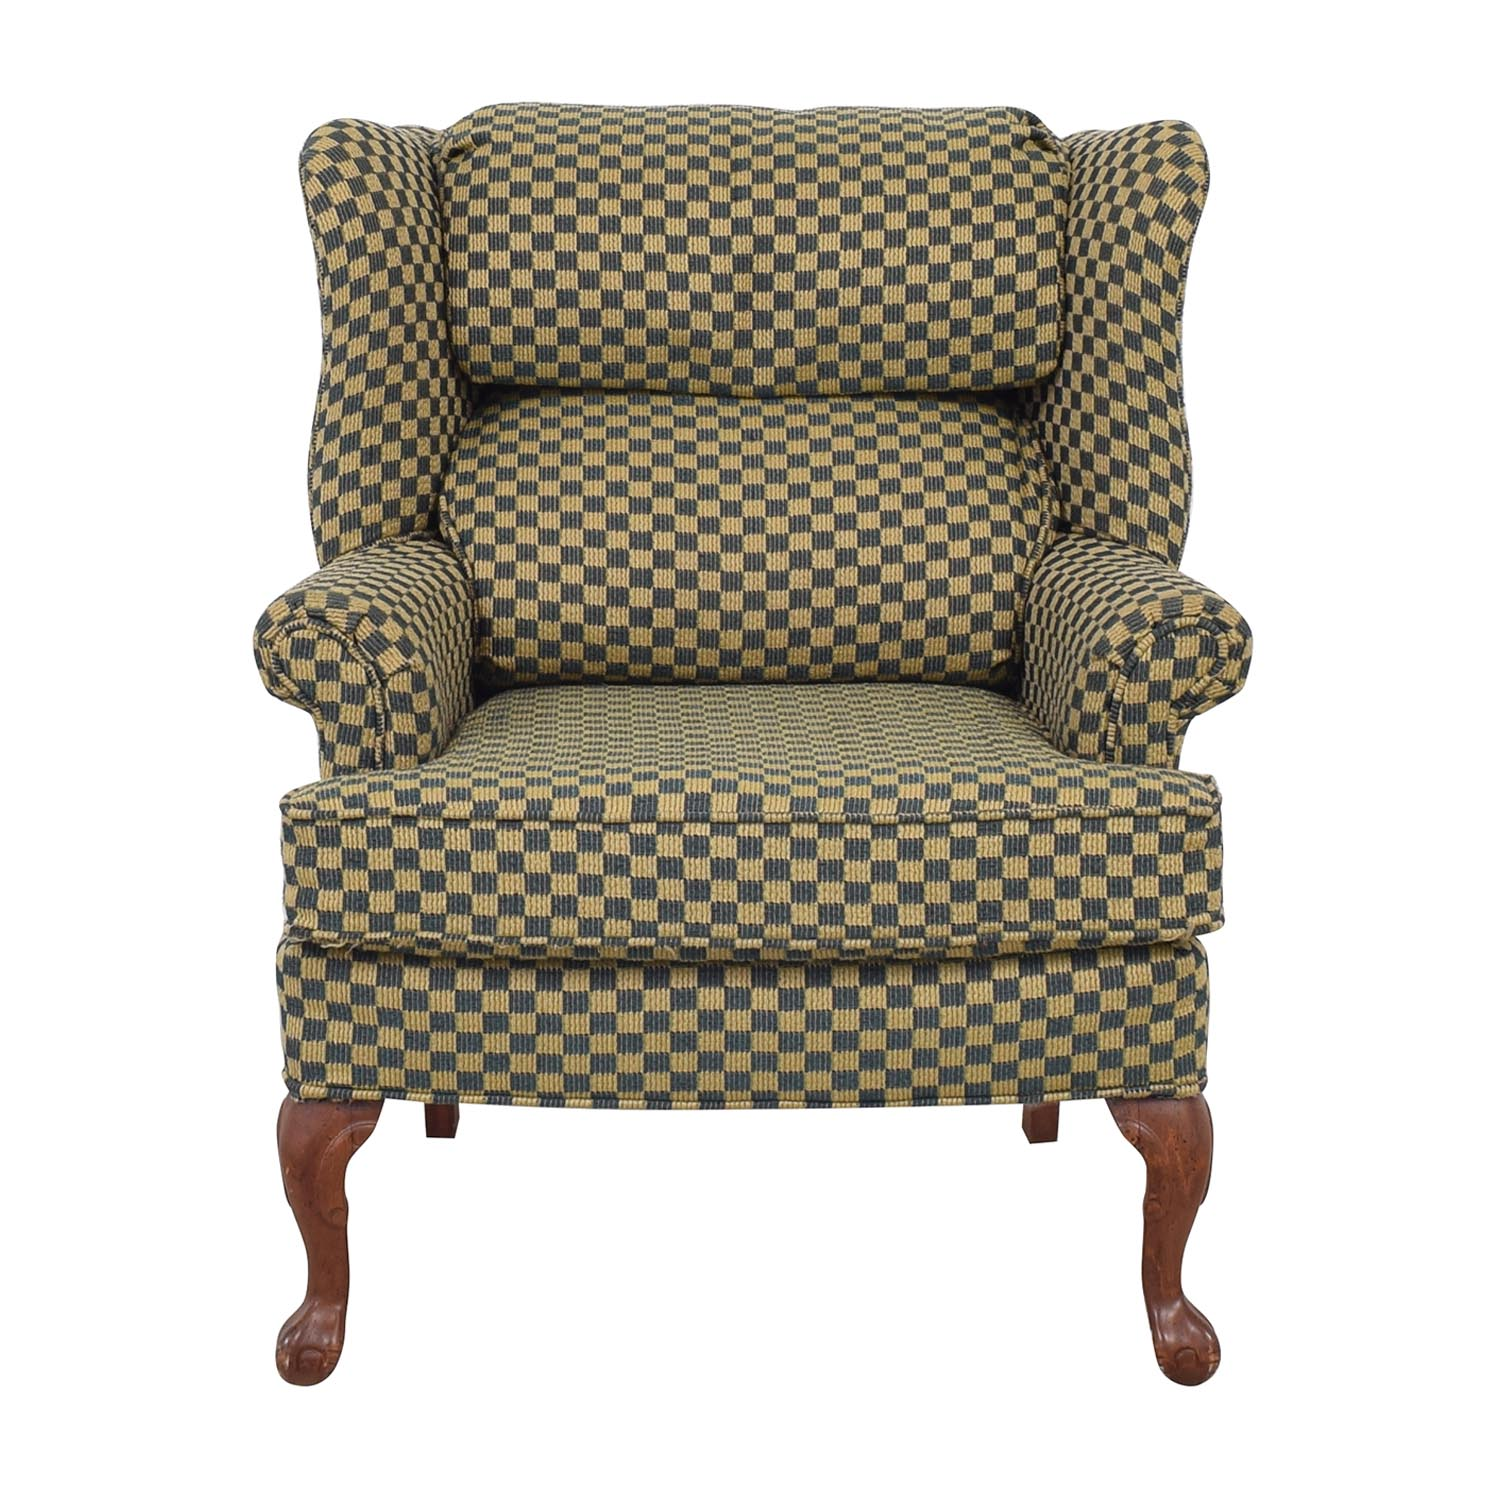 Paul Robert Paul Robert Wingback Chair blue & yellow